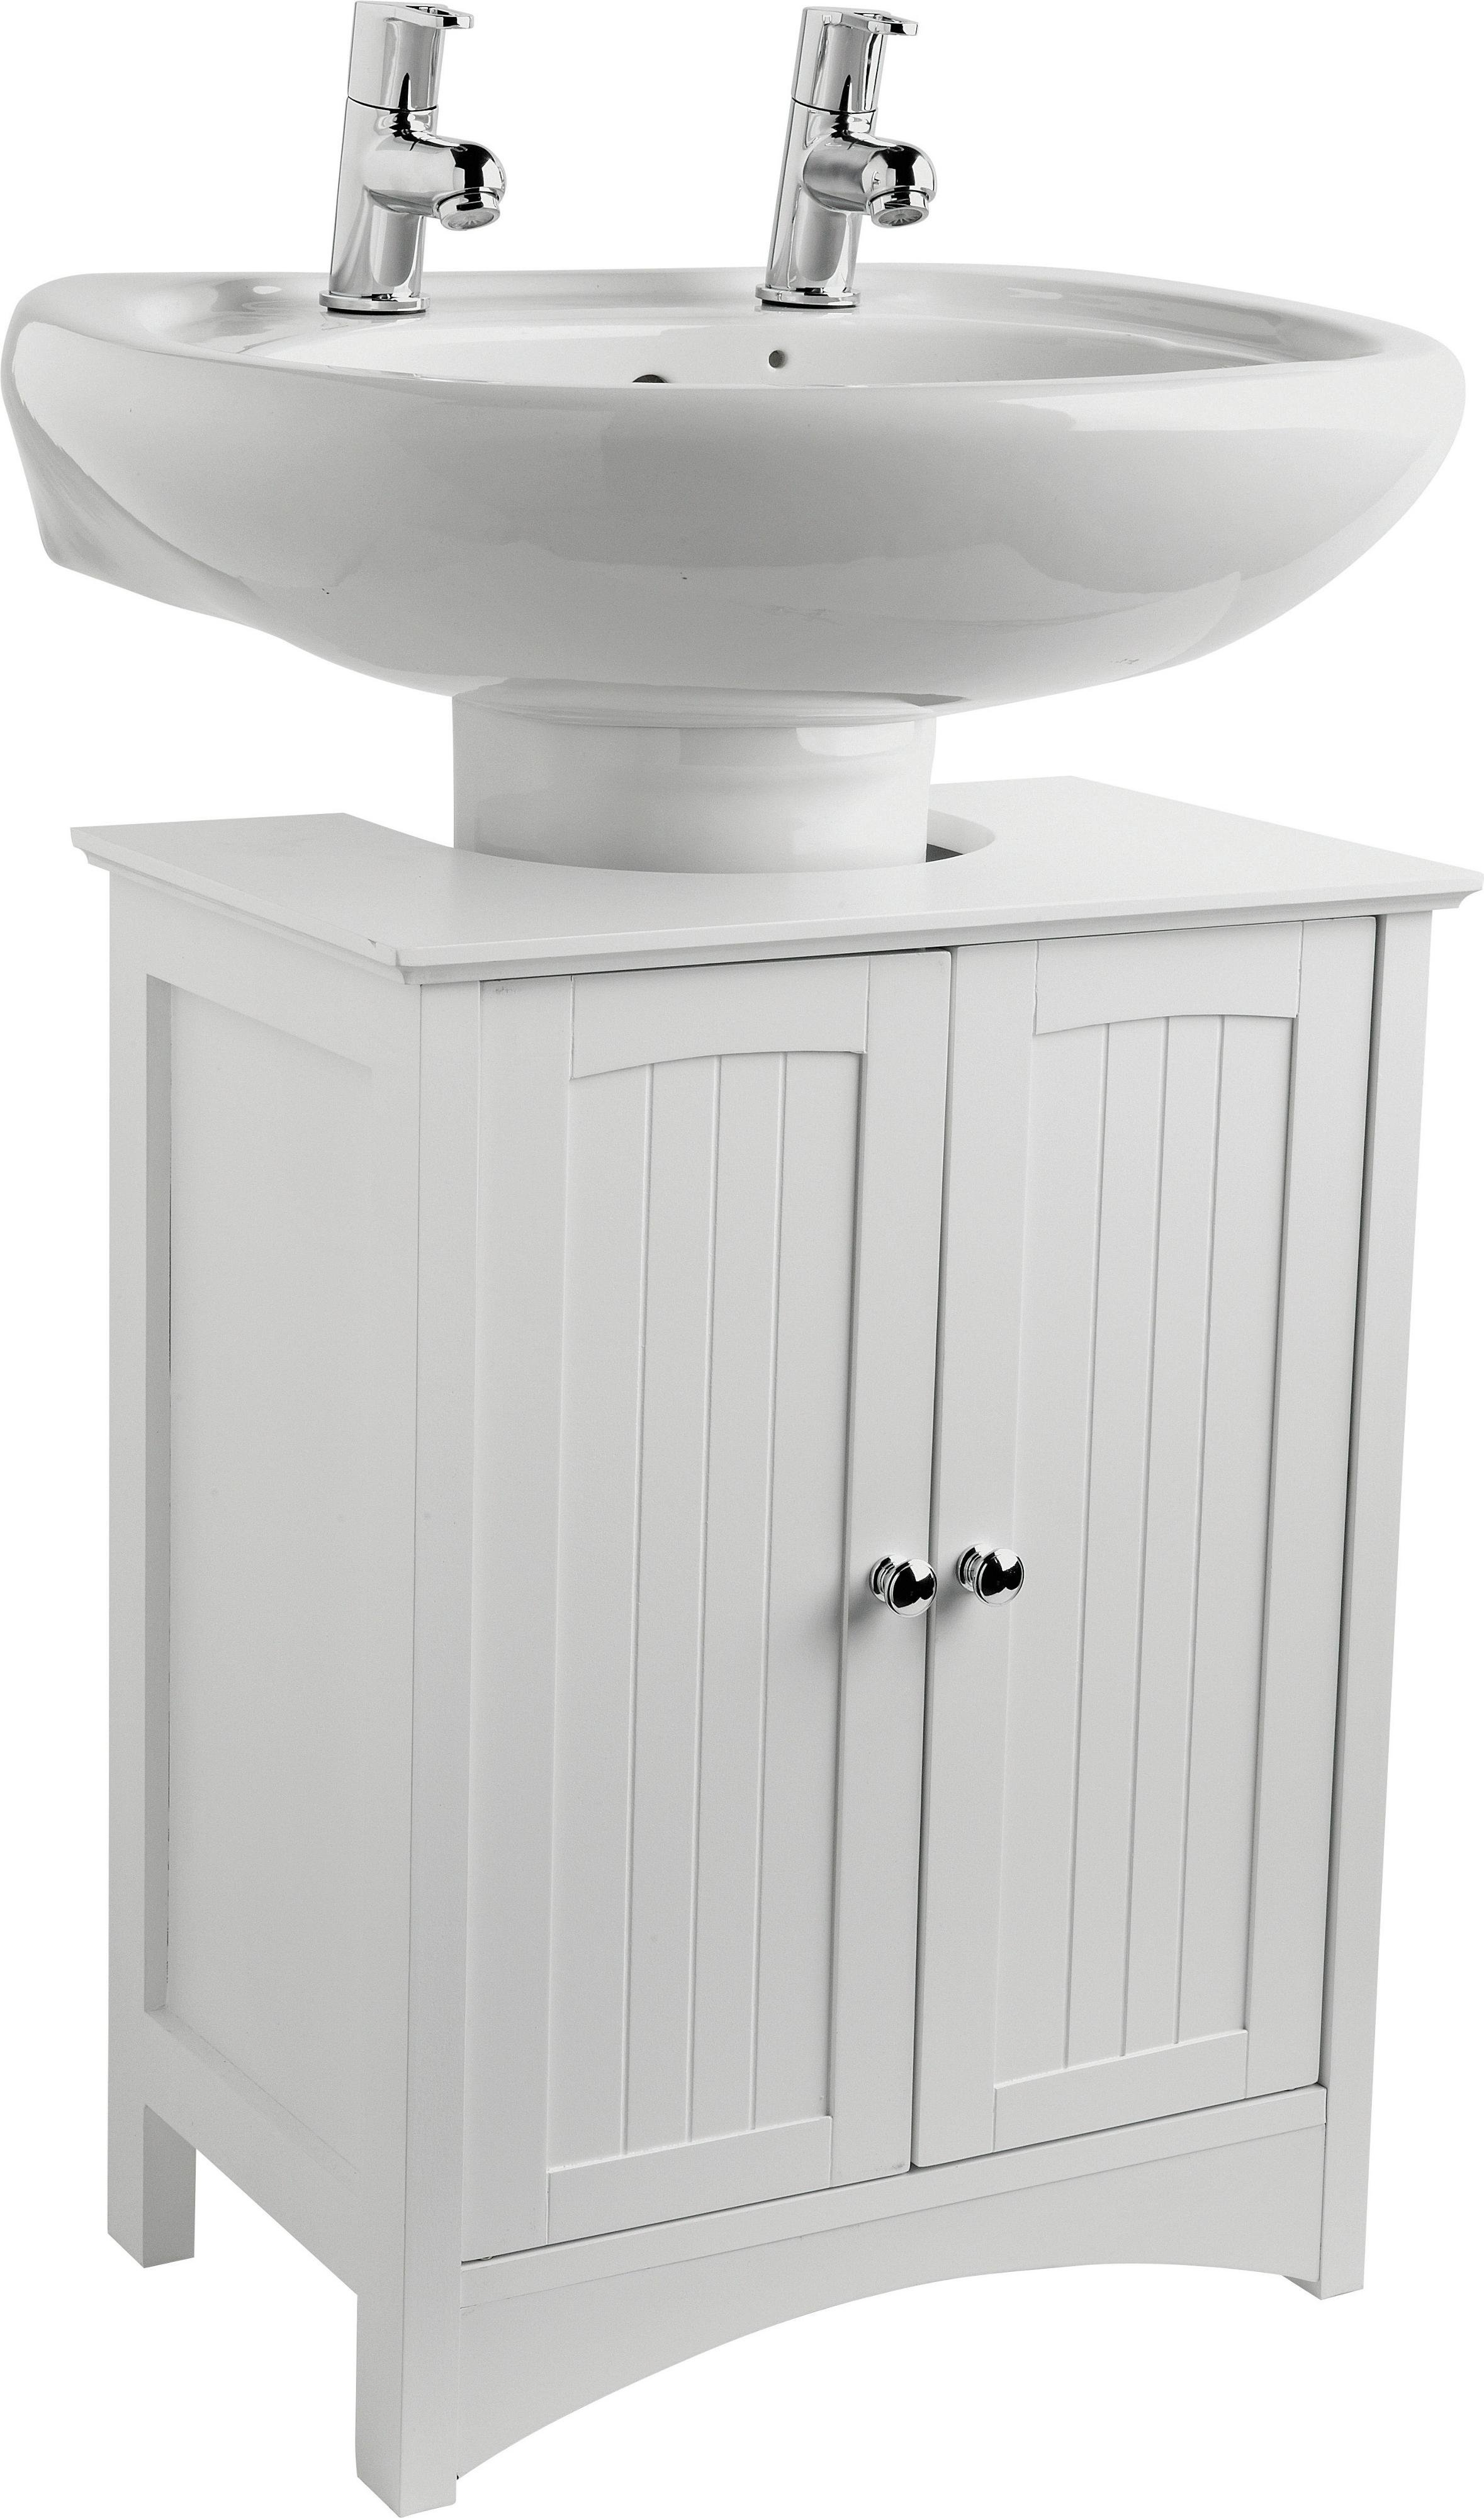 Buy HOME Tongue and Groove Under Sink Storage Unit White at